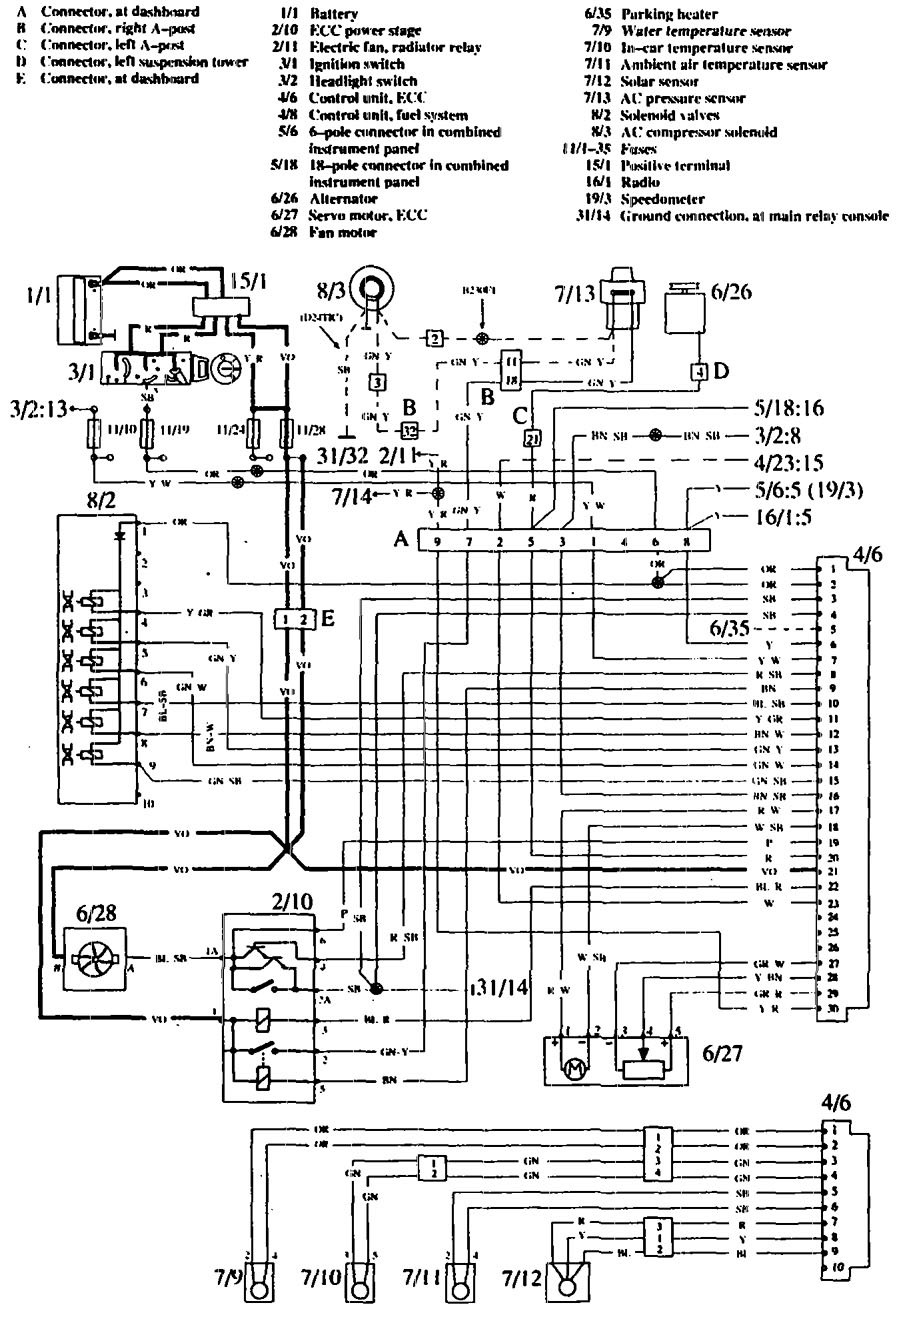 Volvo 760 1990 Wiring Diagrams Hvac Controls on car controls diagram